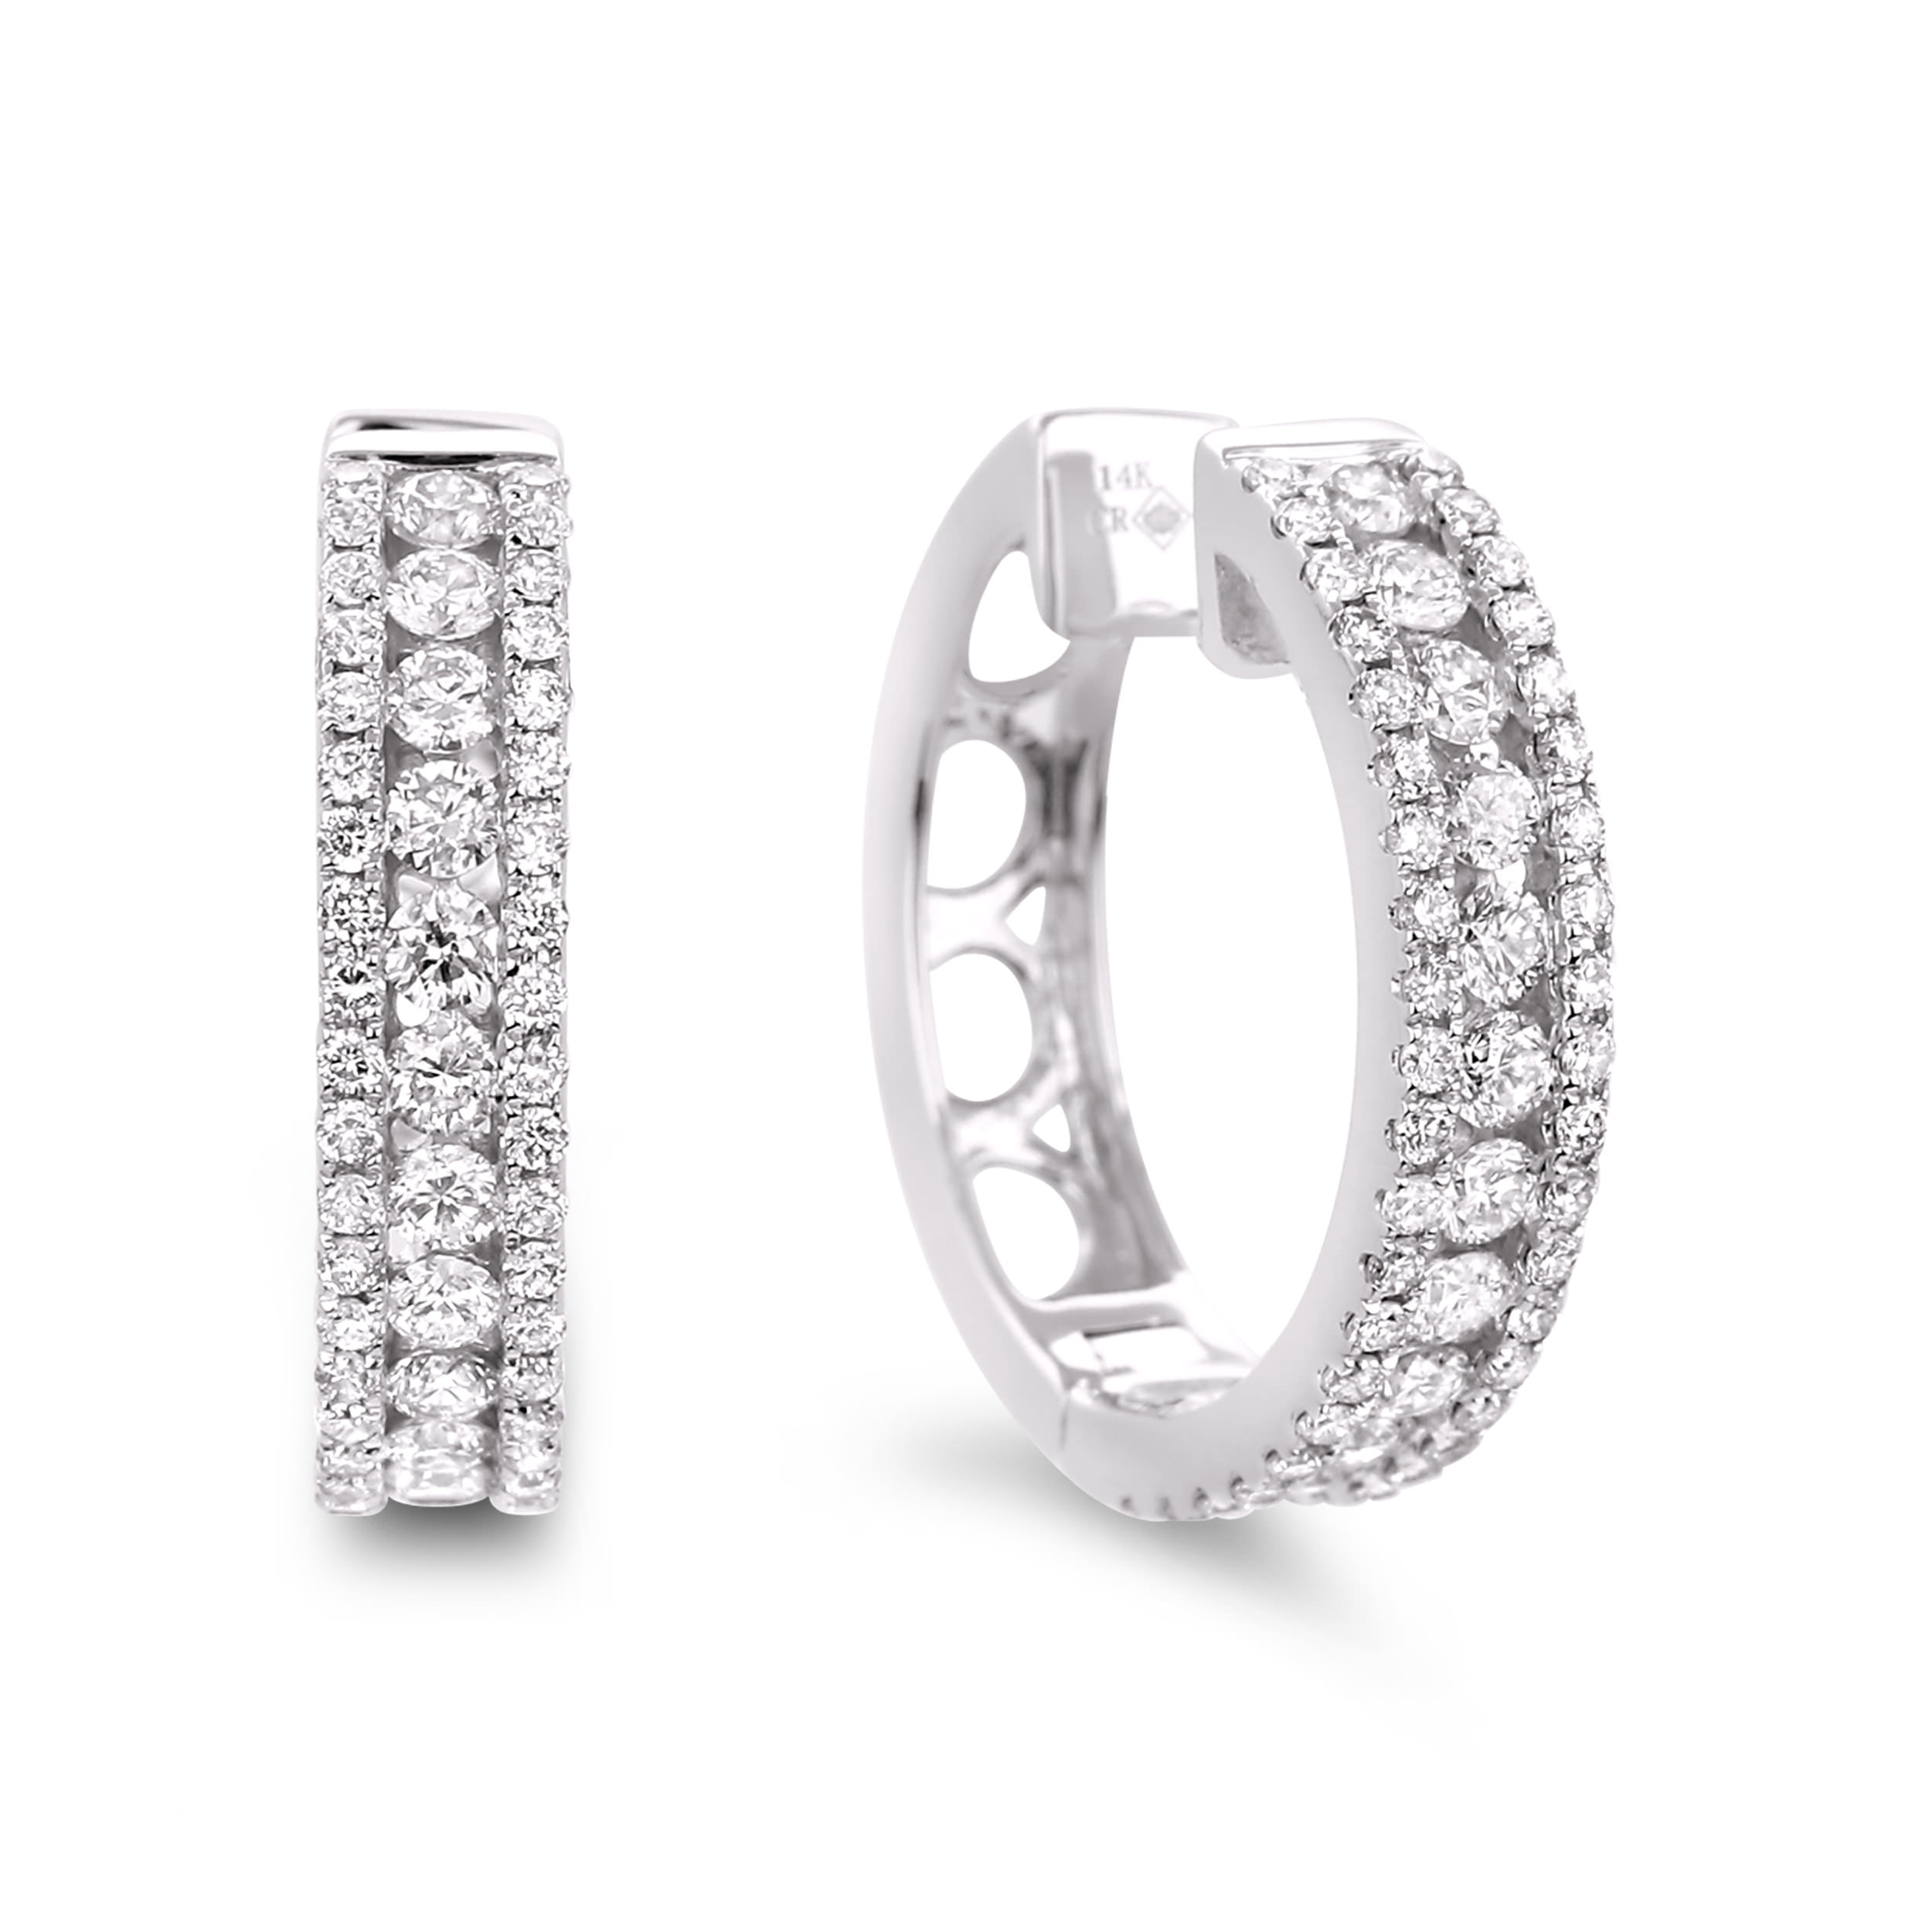 Diamond Hoop Earrings SGE101 (Earrings)